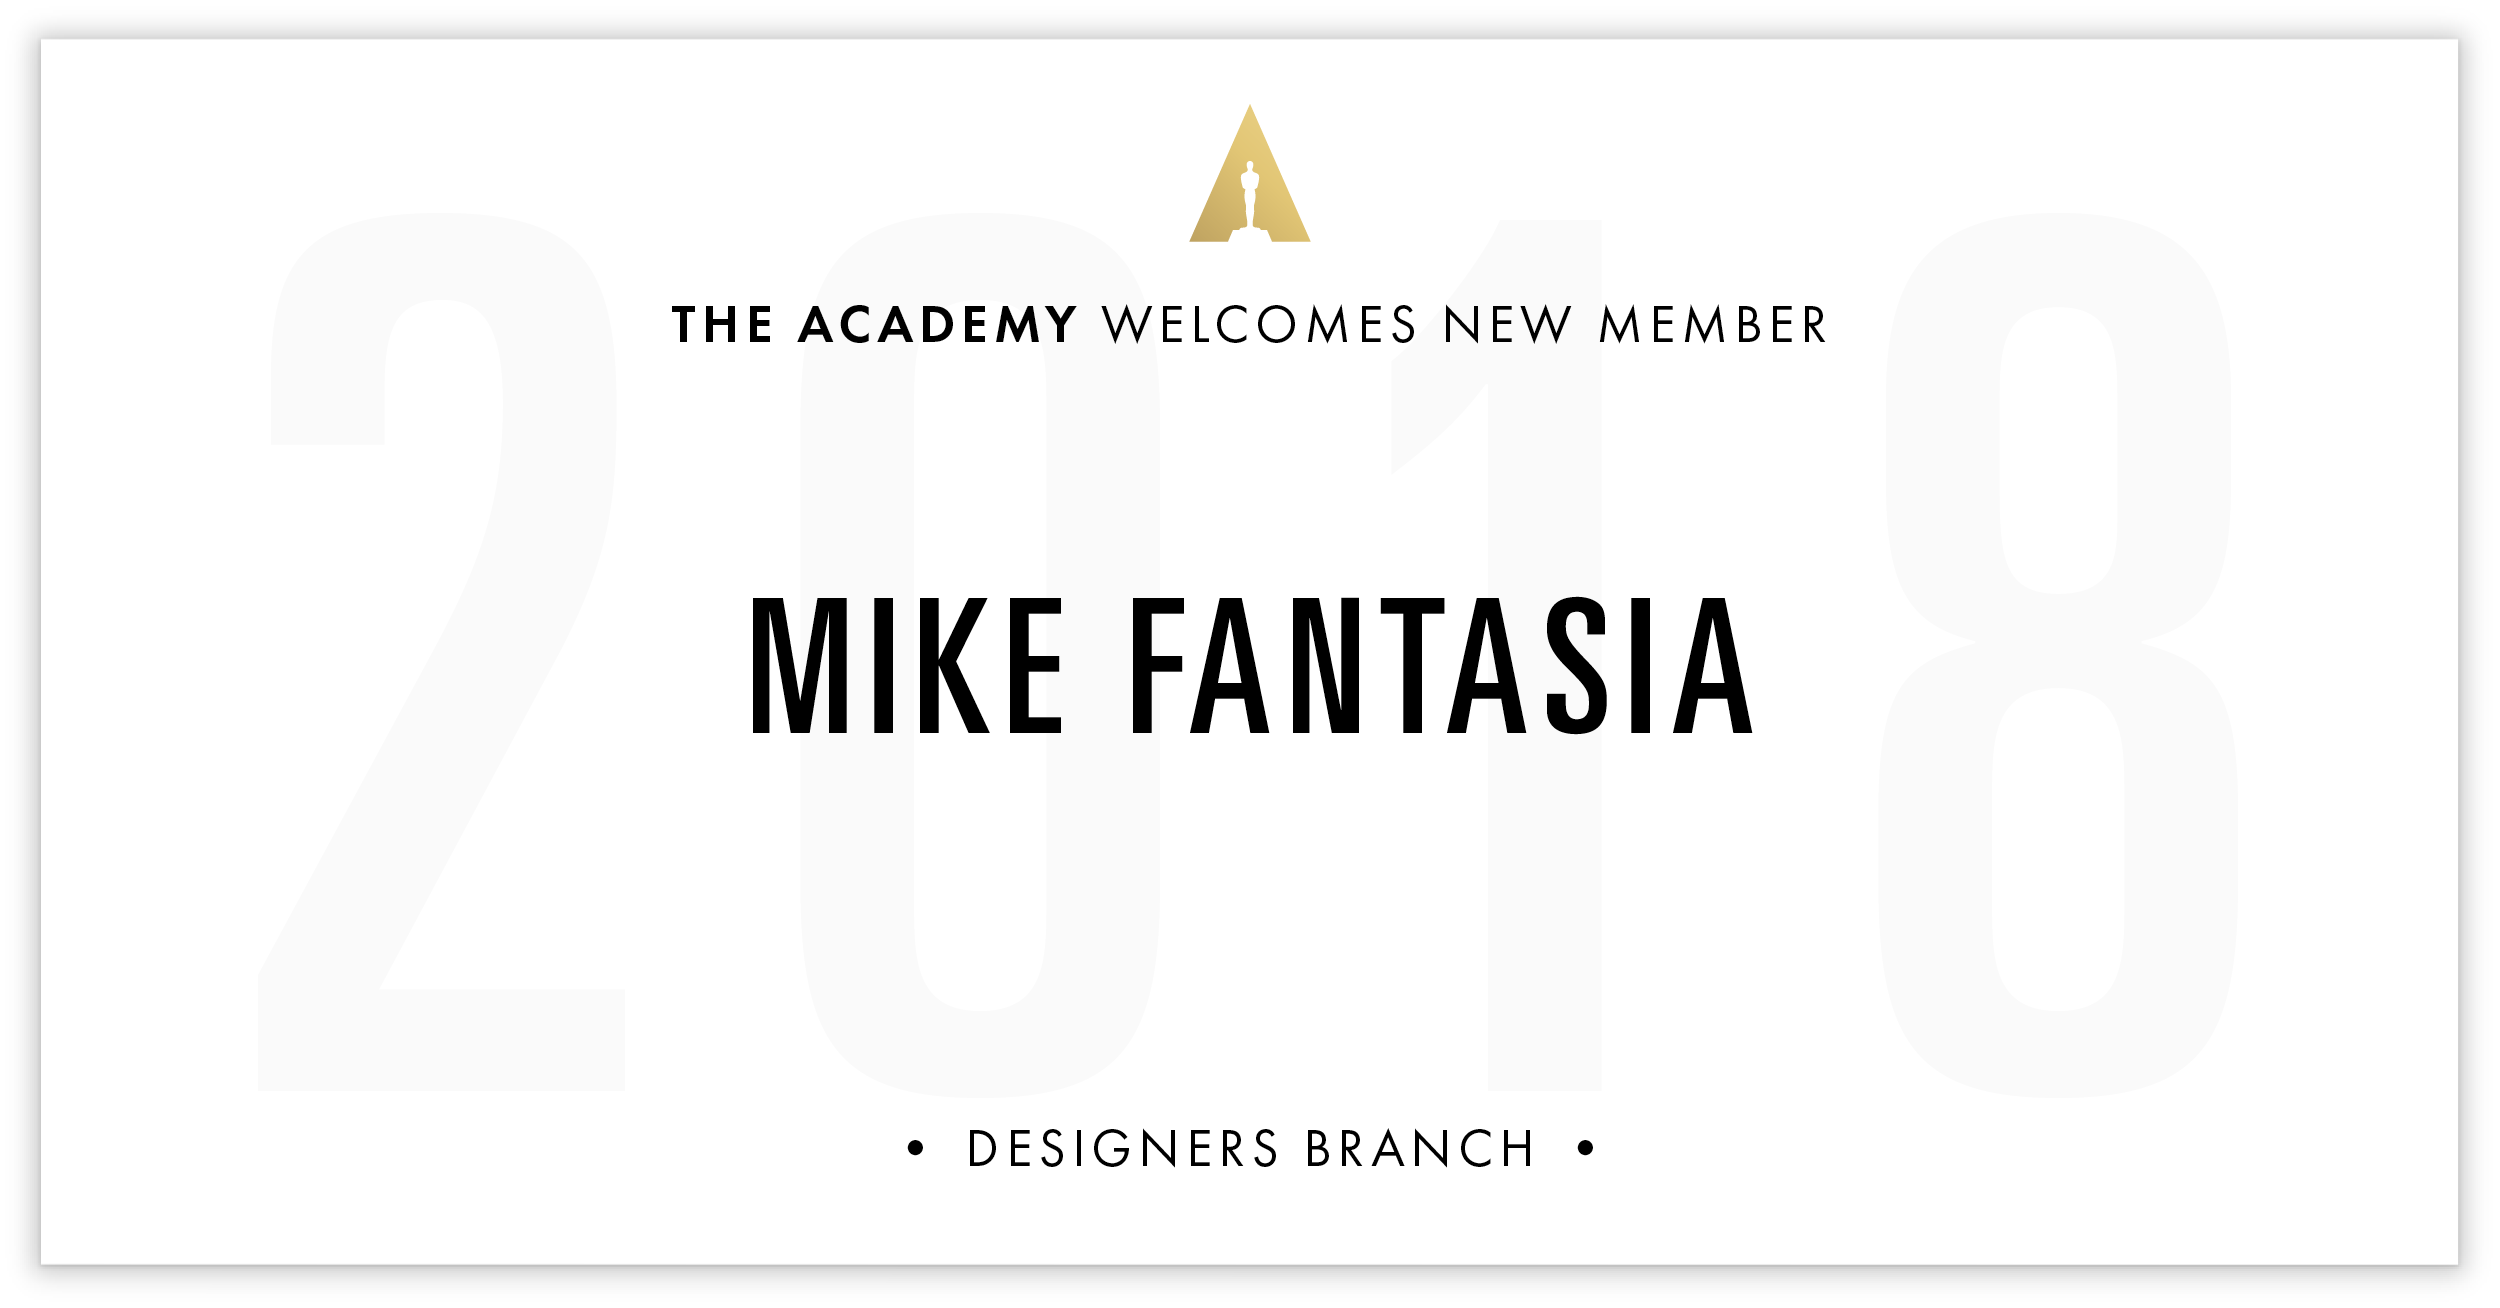 Mike Fantasia is invited!